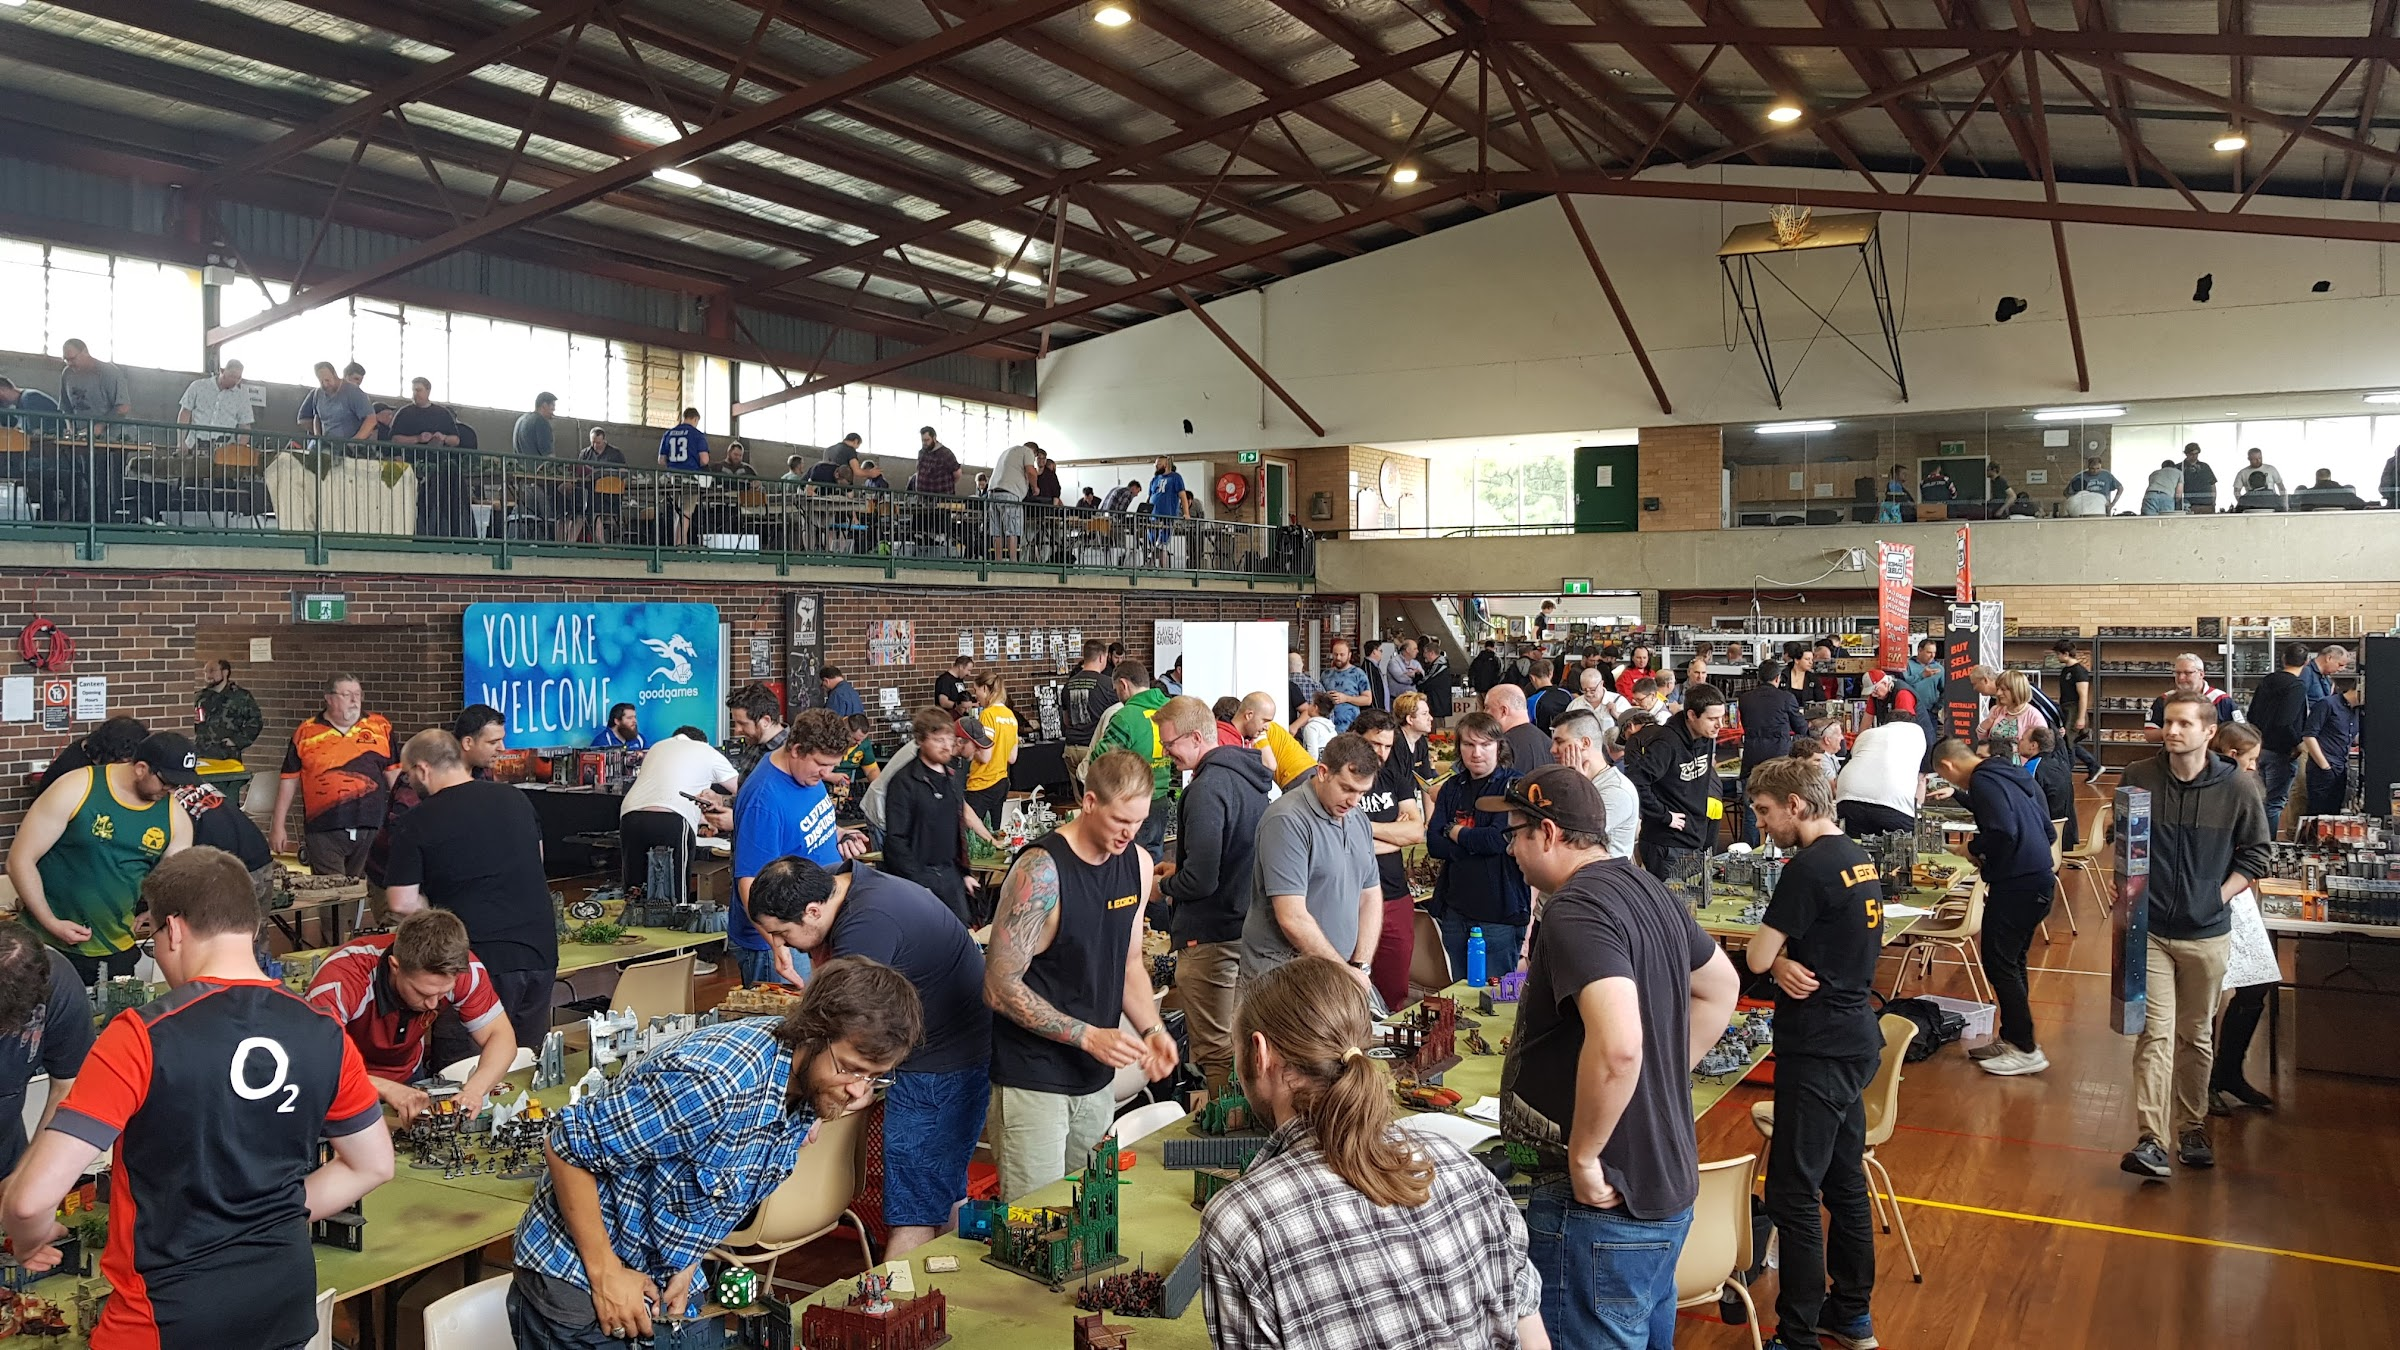 The main hall ... 1 of 7 different spaces full of gaming goodness!